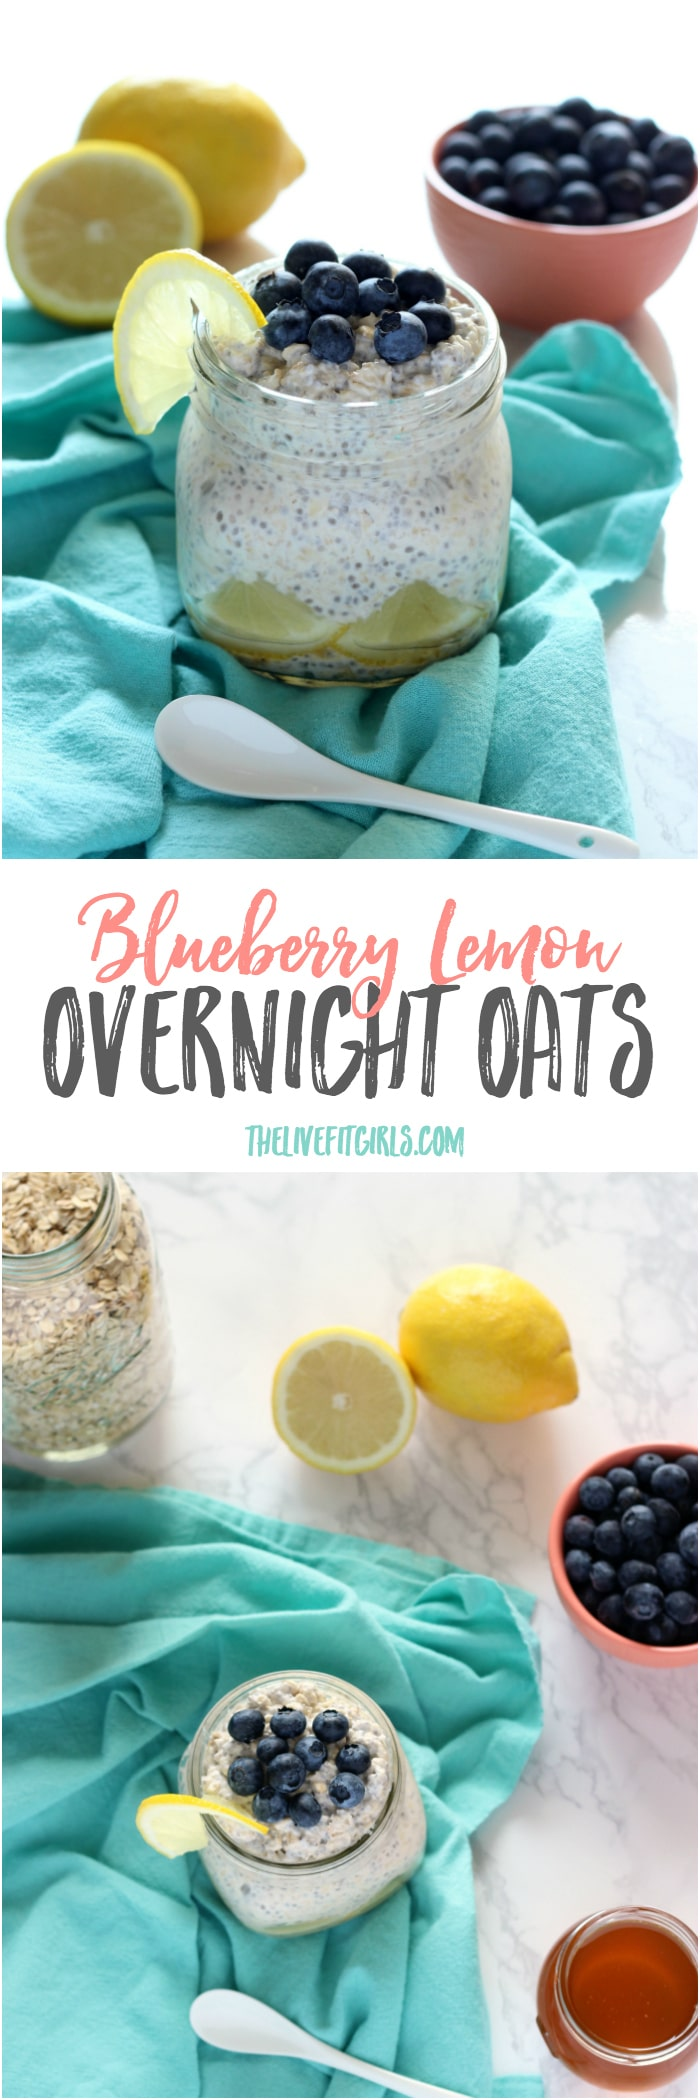 Blueberry Lemon Overnight Oats Pin